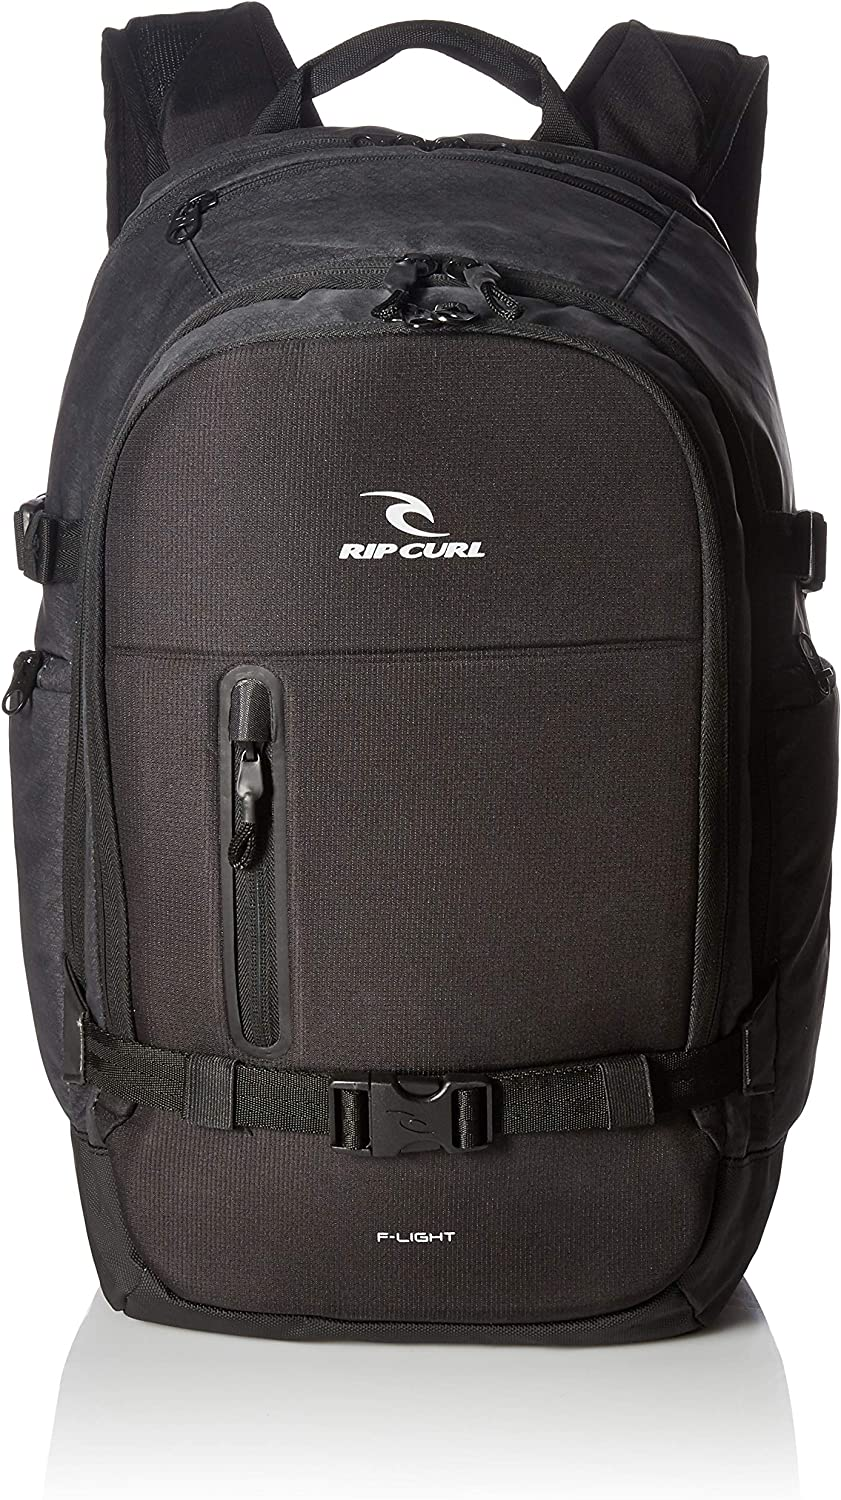 Rip Curl Men's F-Light Posse Tech Backpack